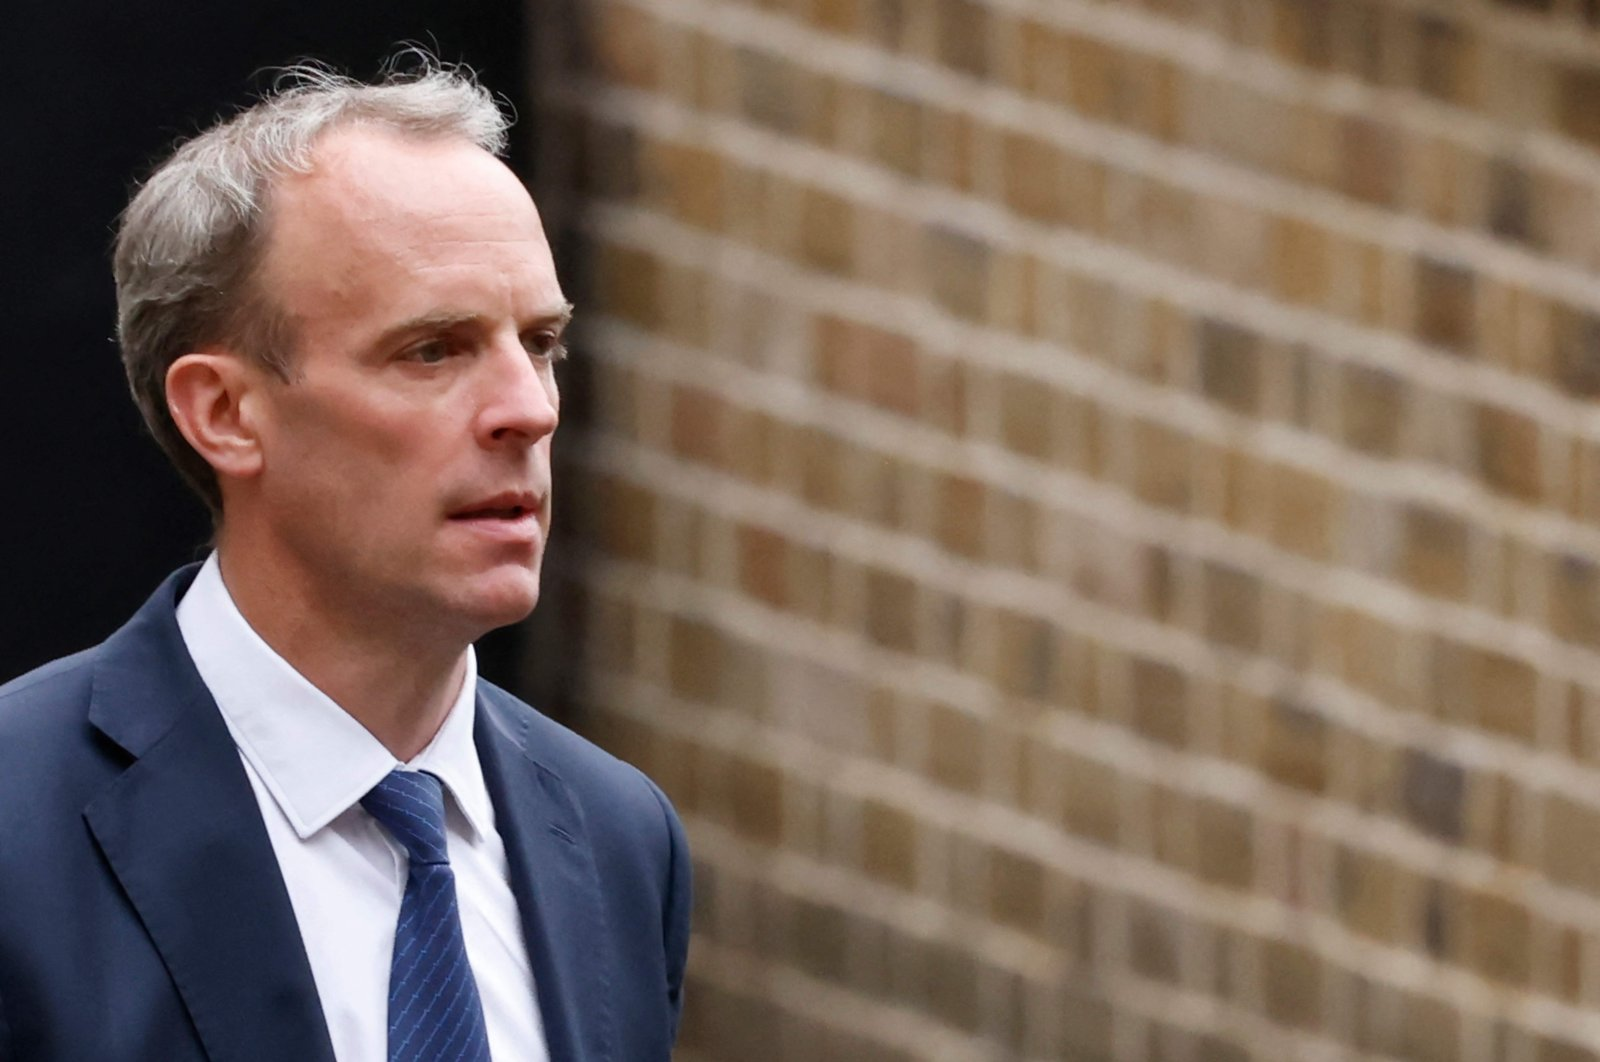 Britain's Foreign Secretary Dominic Raab leaves the Foreign, Commonwealth and Development Office headed for Downing Street in central London, U.K., Aug. 20, 2021. (AFP Photo)